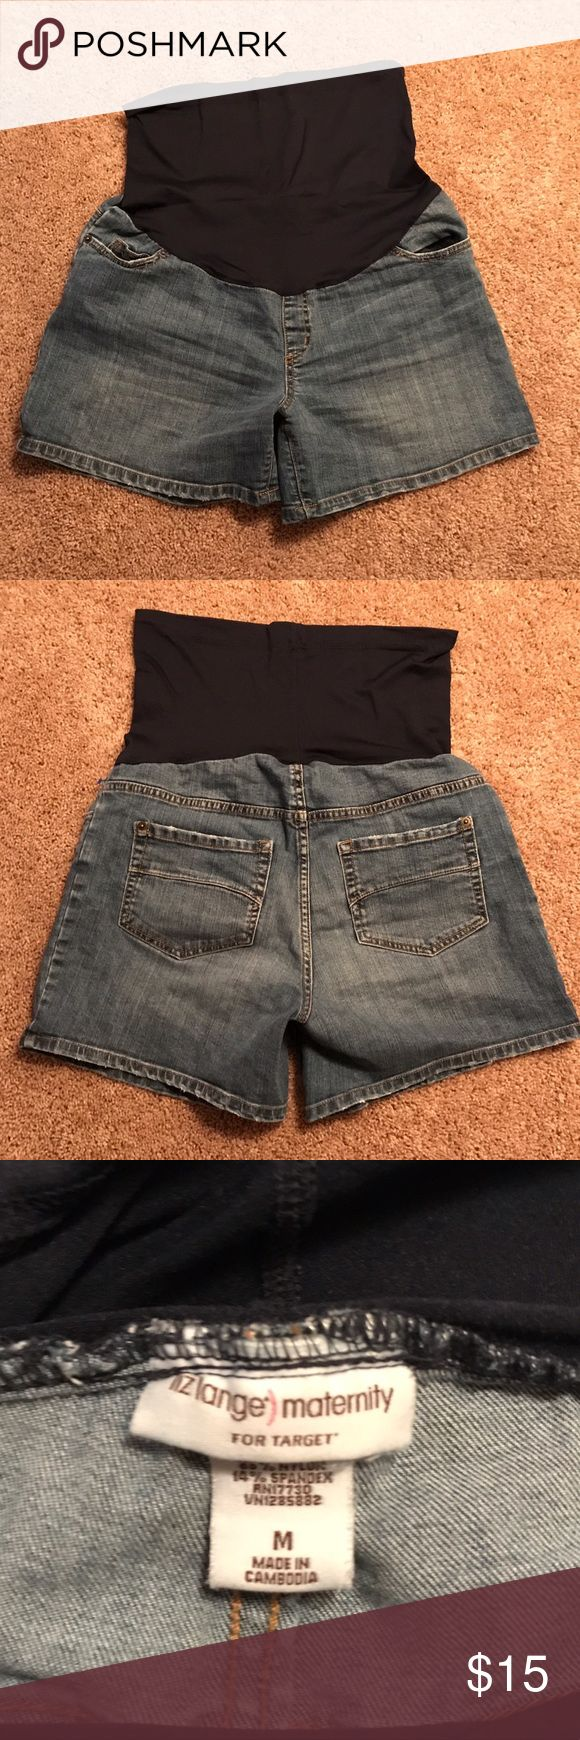 Liz Lange Maternity Shorts Size medium. Excellent pair of maternity shorts by Liz Lange. Slightly distressed design. Liz Lange Shorts Jean Shorts